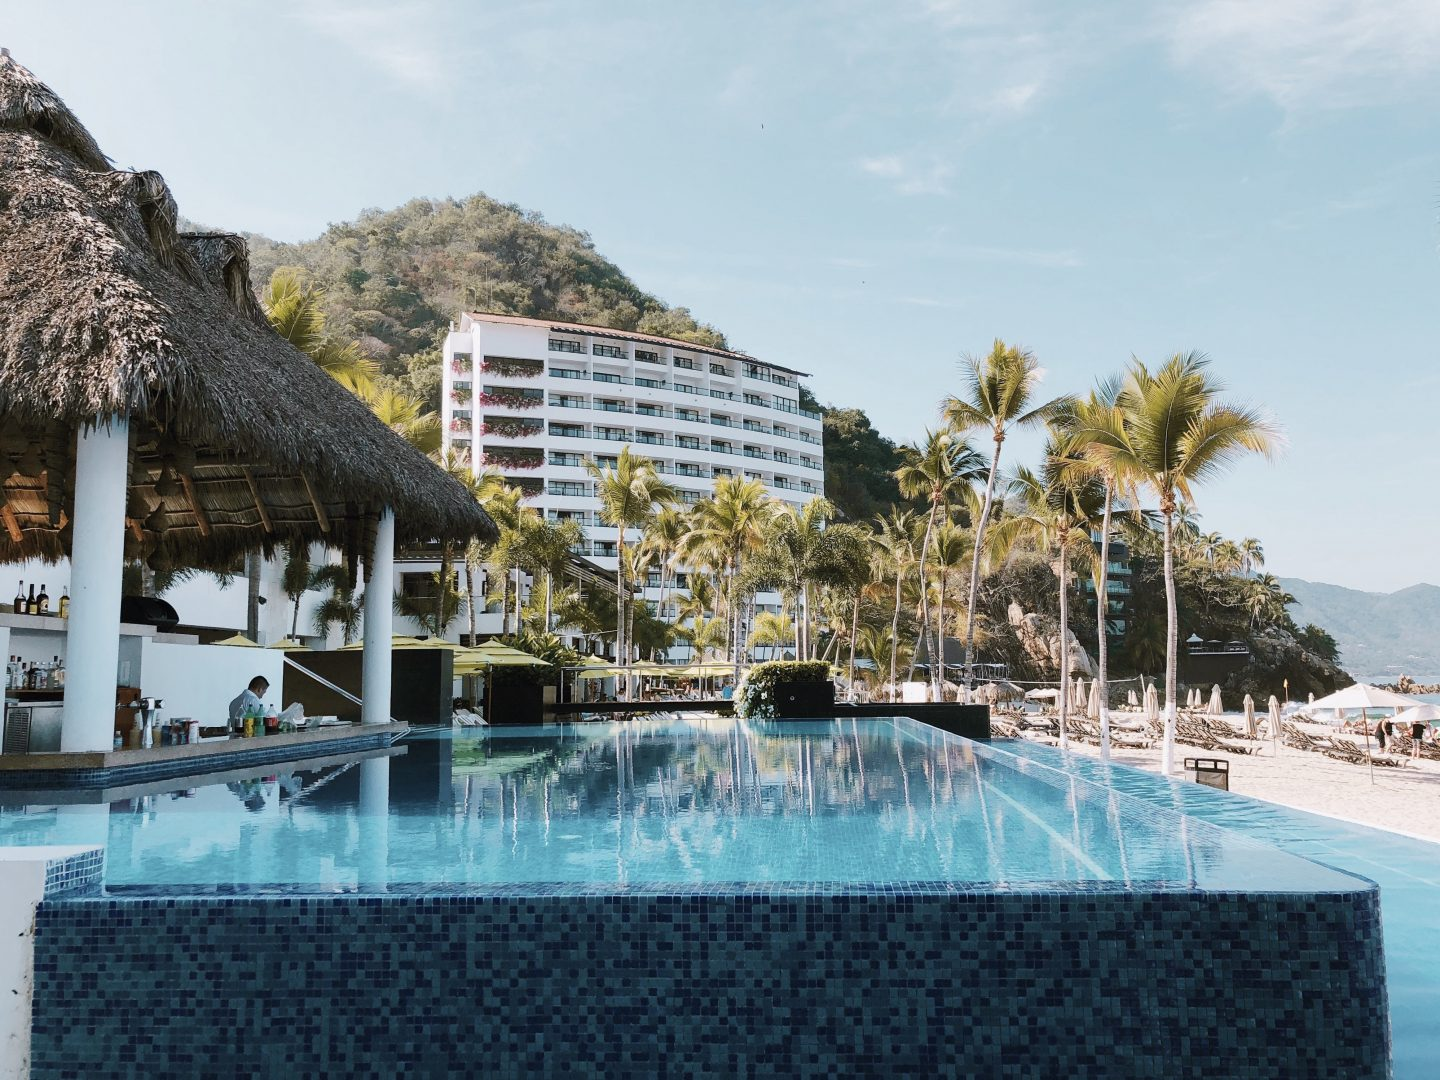 What I Love About the Hyatt Ziva Puerto Vallarta